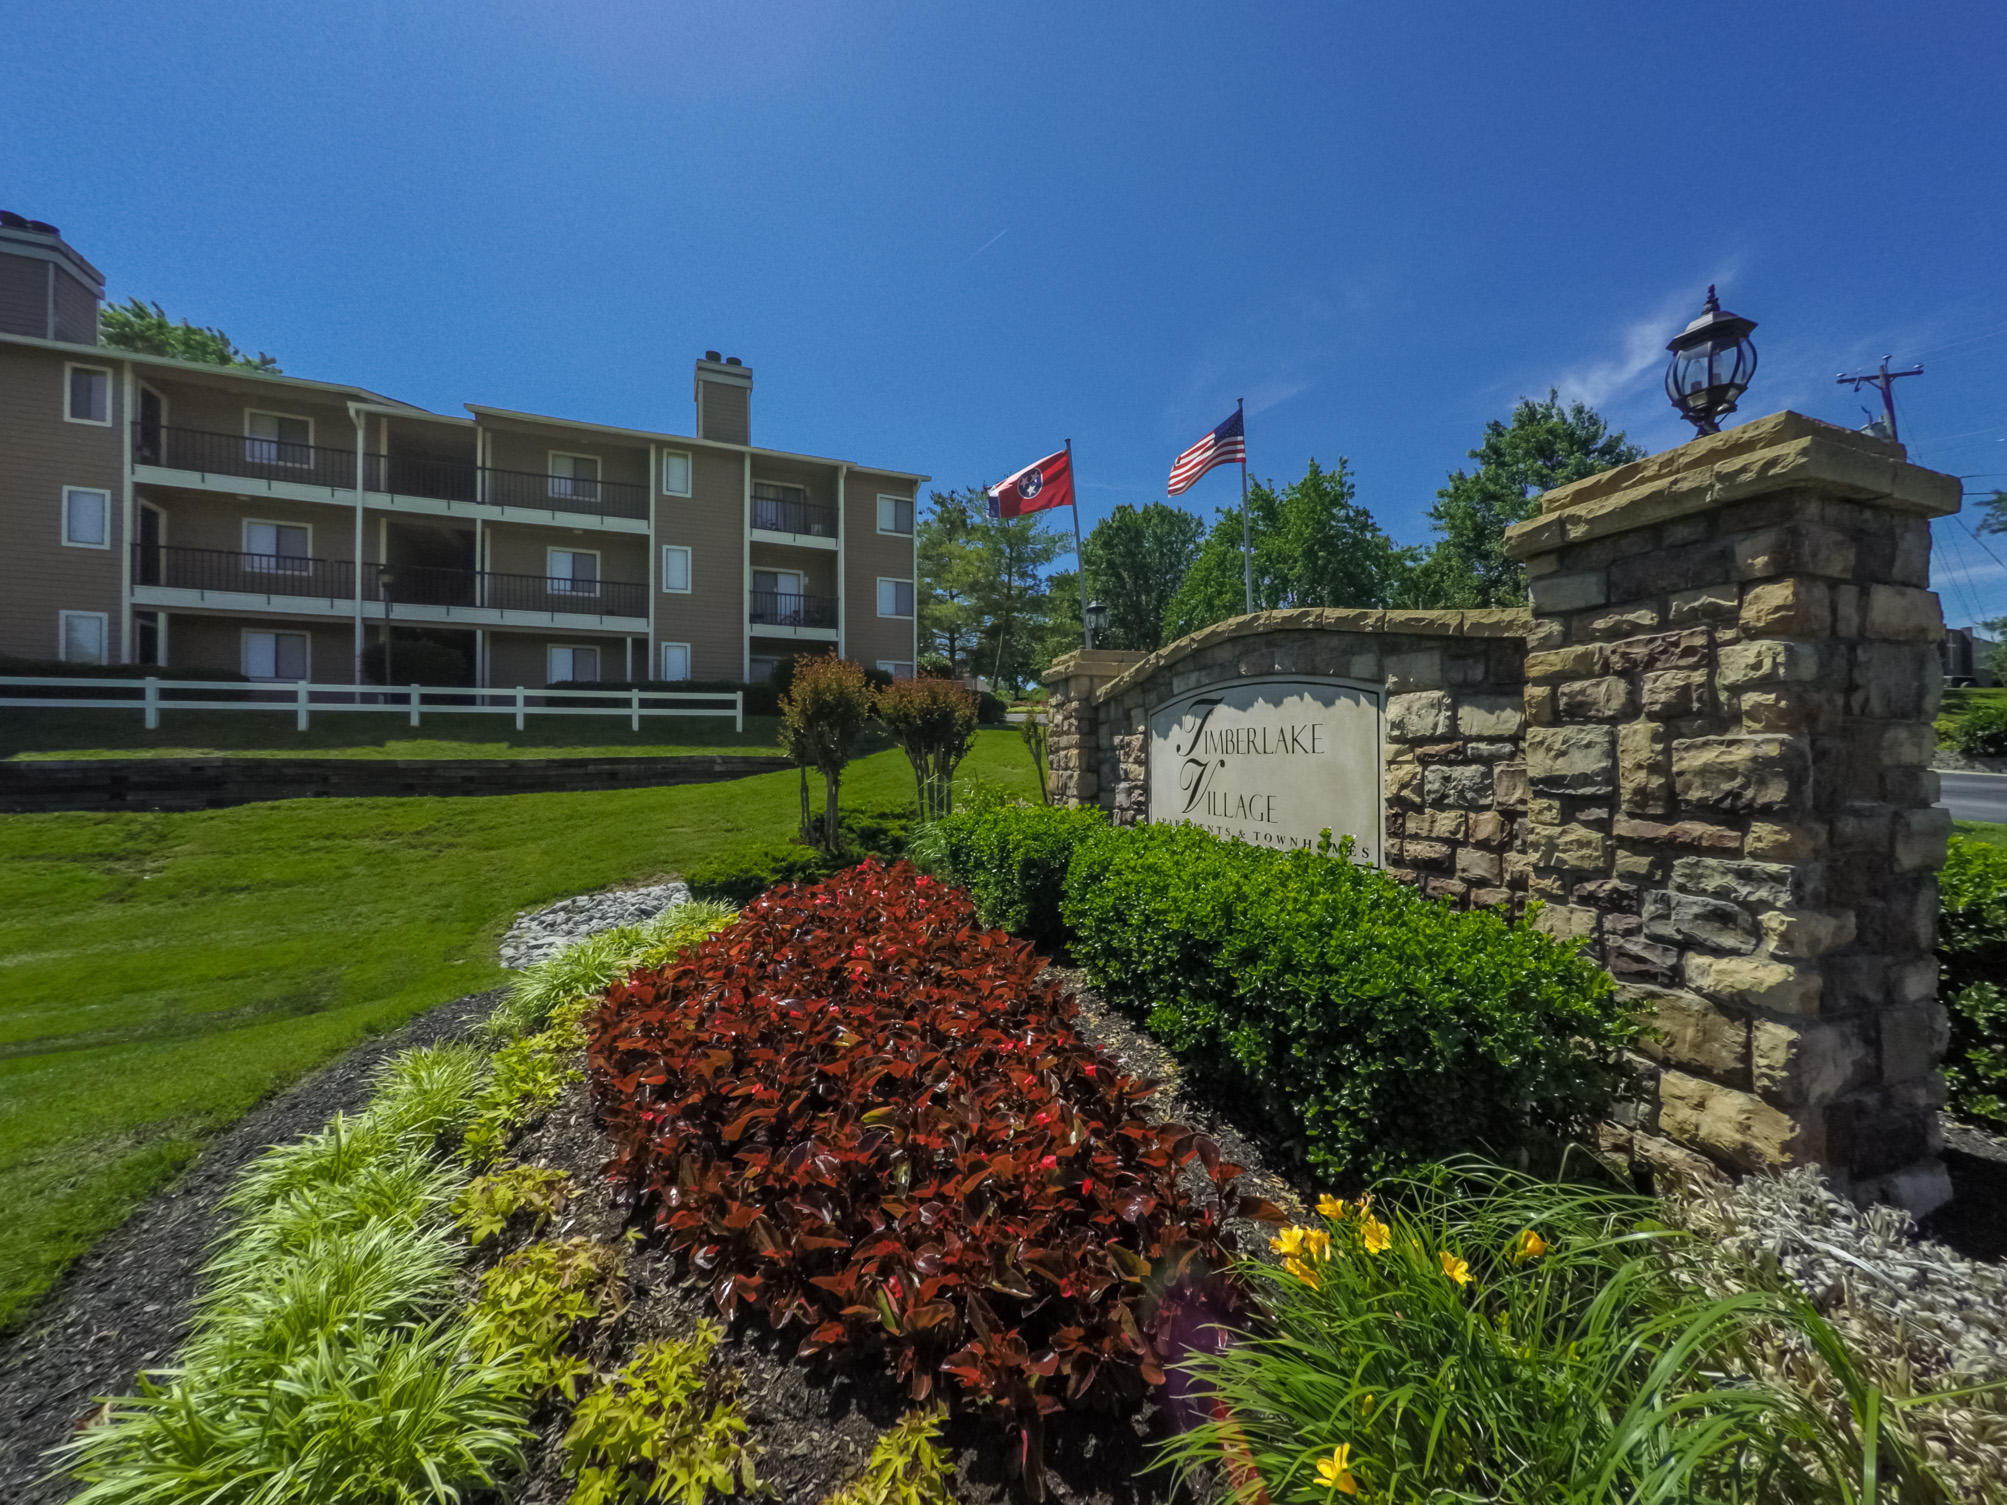 Timberlake Village Apartments Antioch Tn